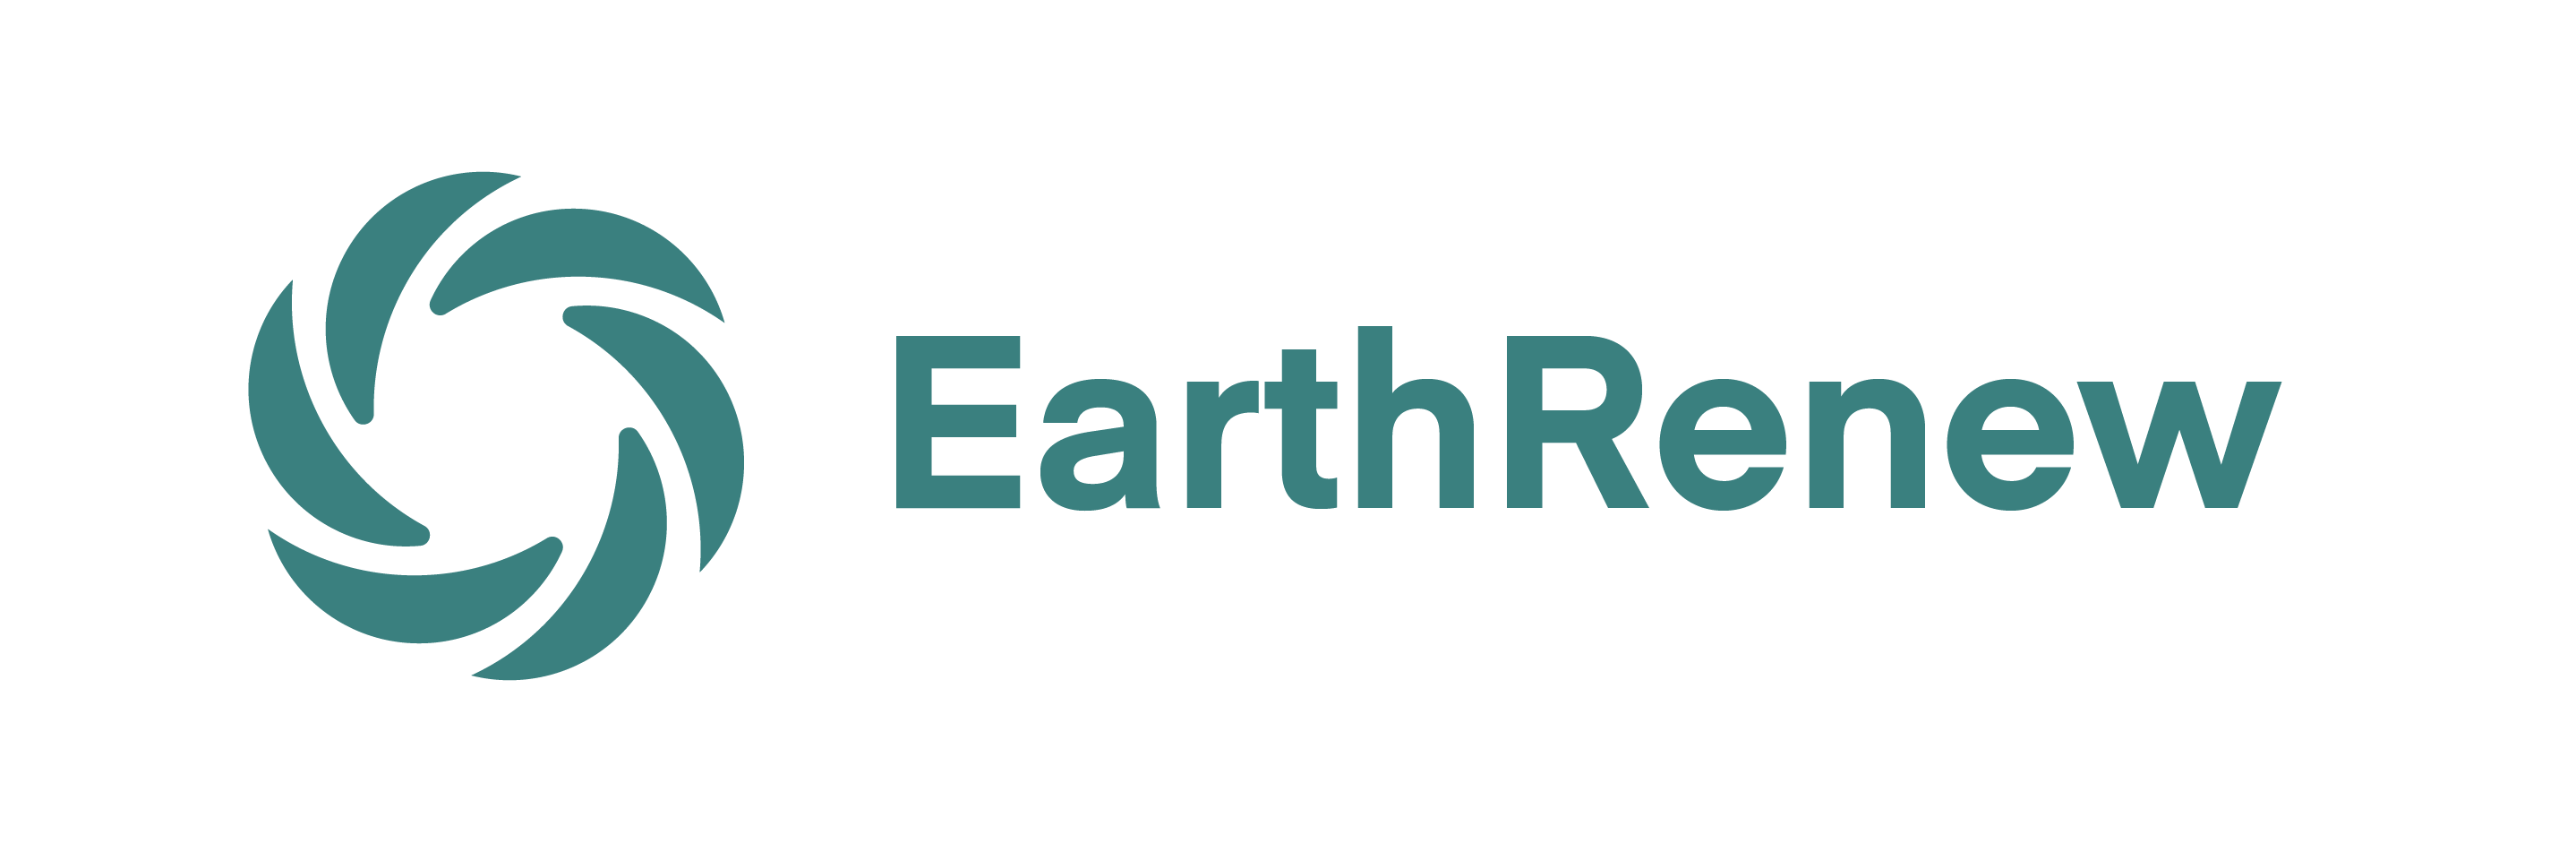 REPEAT - EarthRenew to Acquire Stake in Replenish Nutrients Ltd